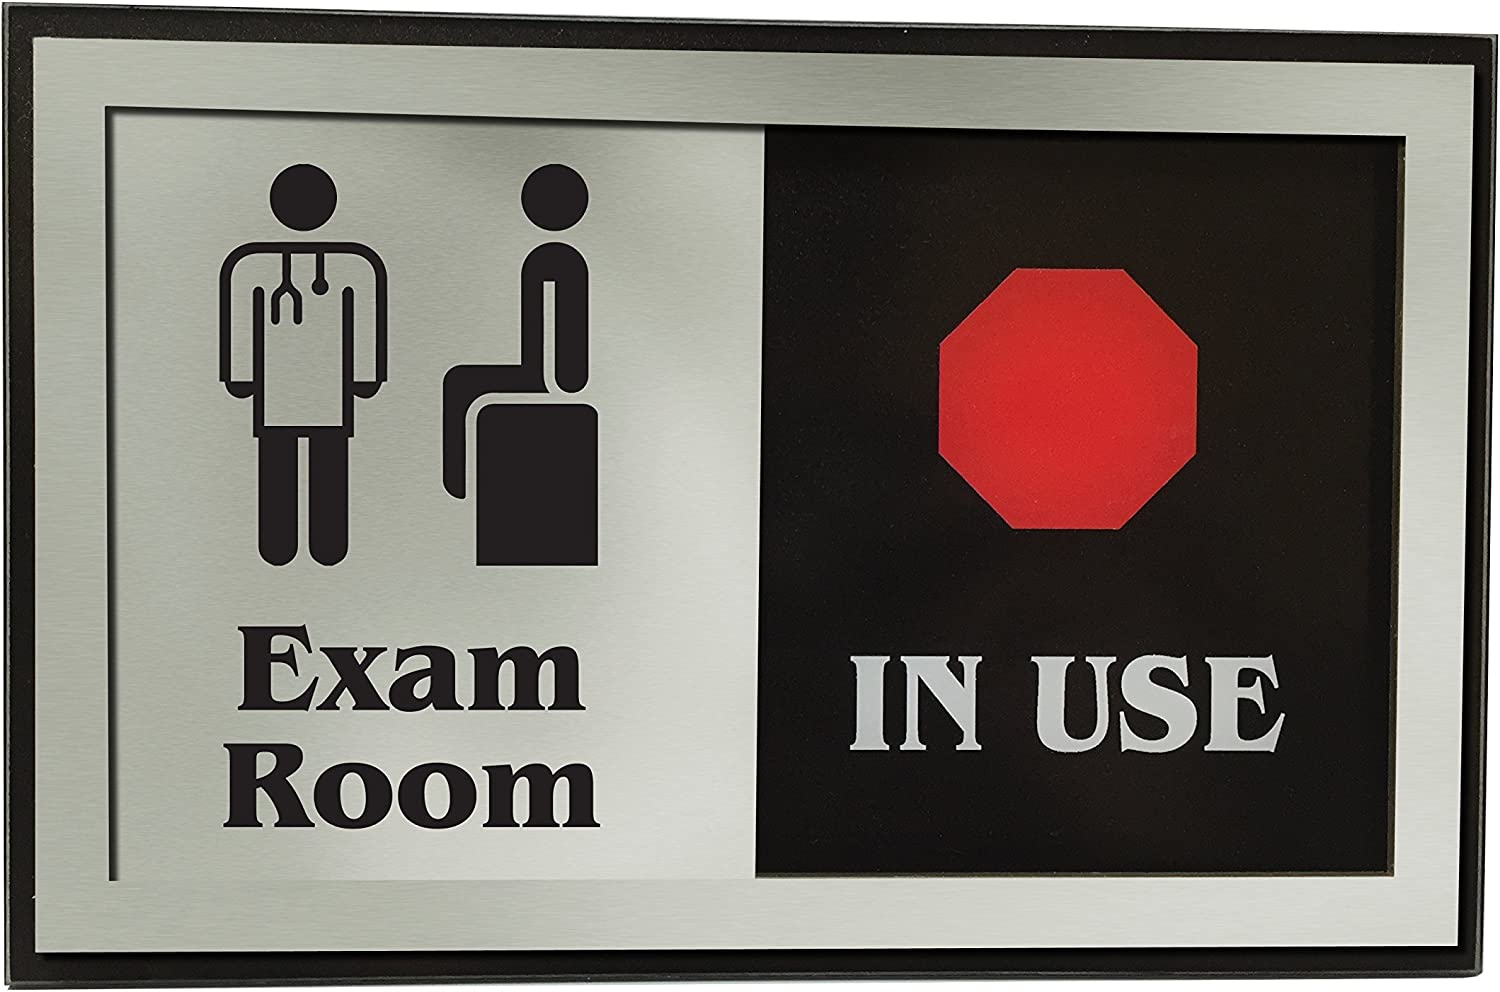 Exam Room Door Sign Modern Vintage//Retro Styled Set for Doorways